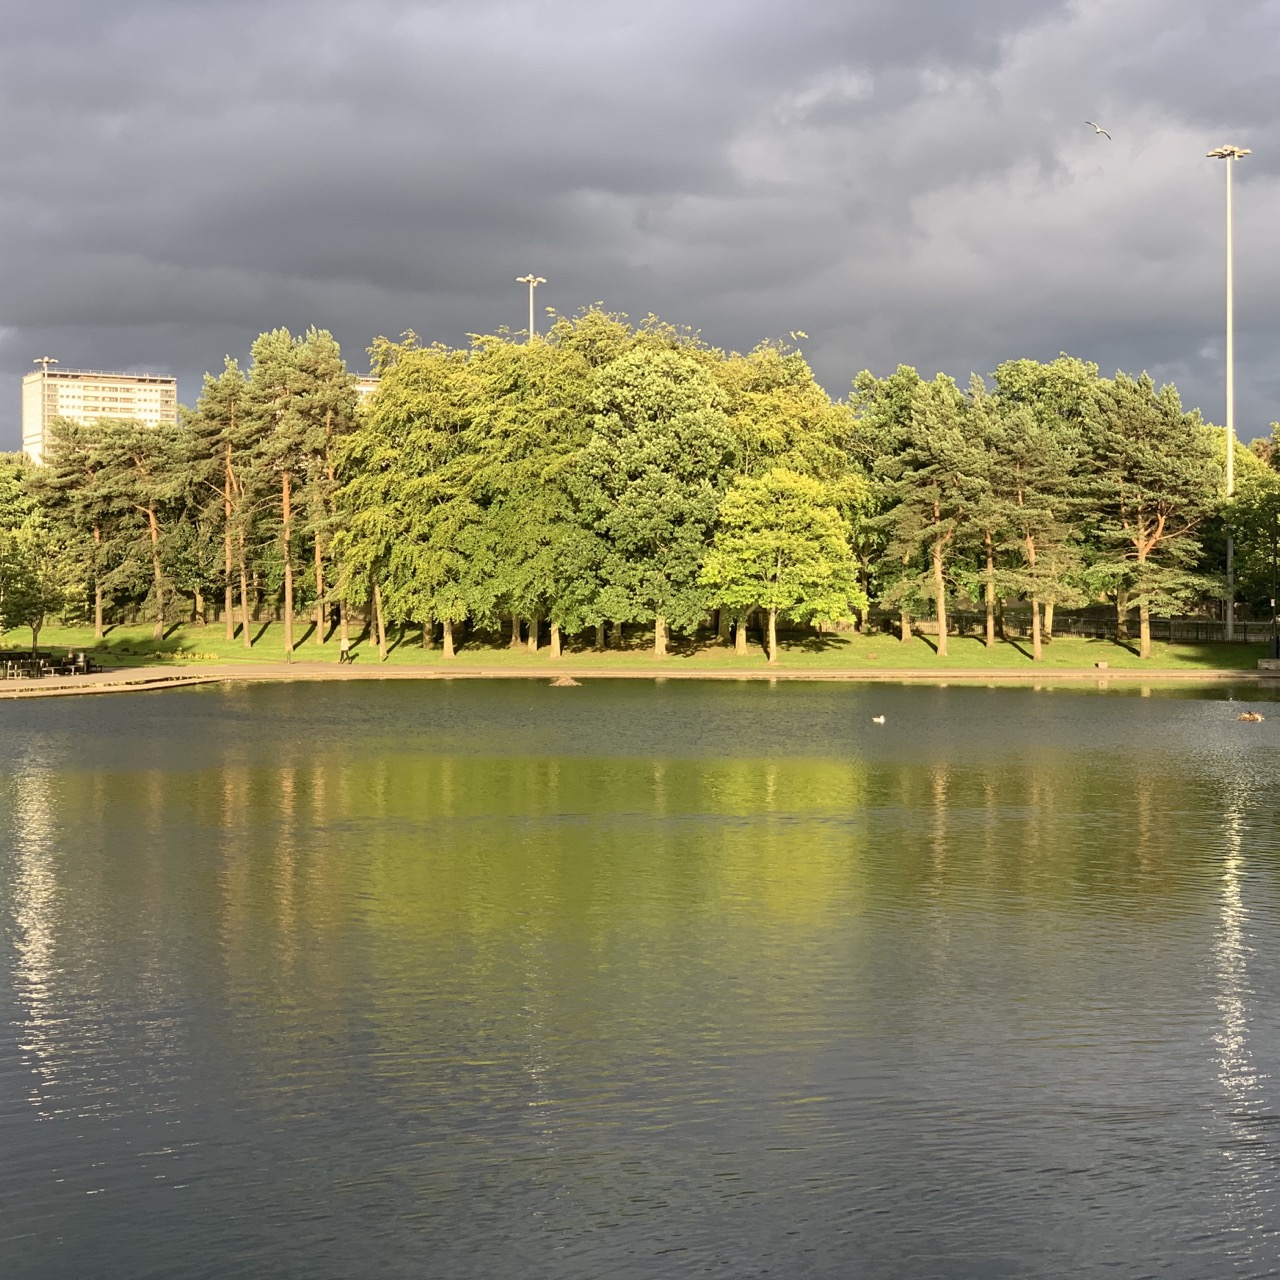 Victoria Park Pond, dark clouds, bright light on trees